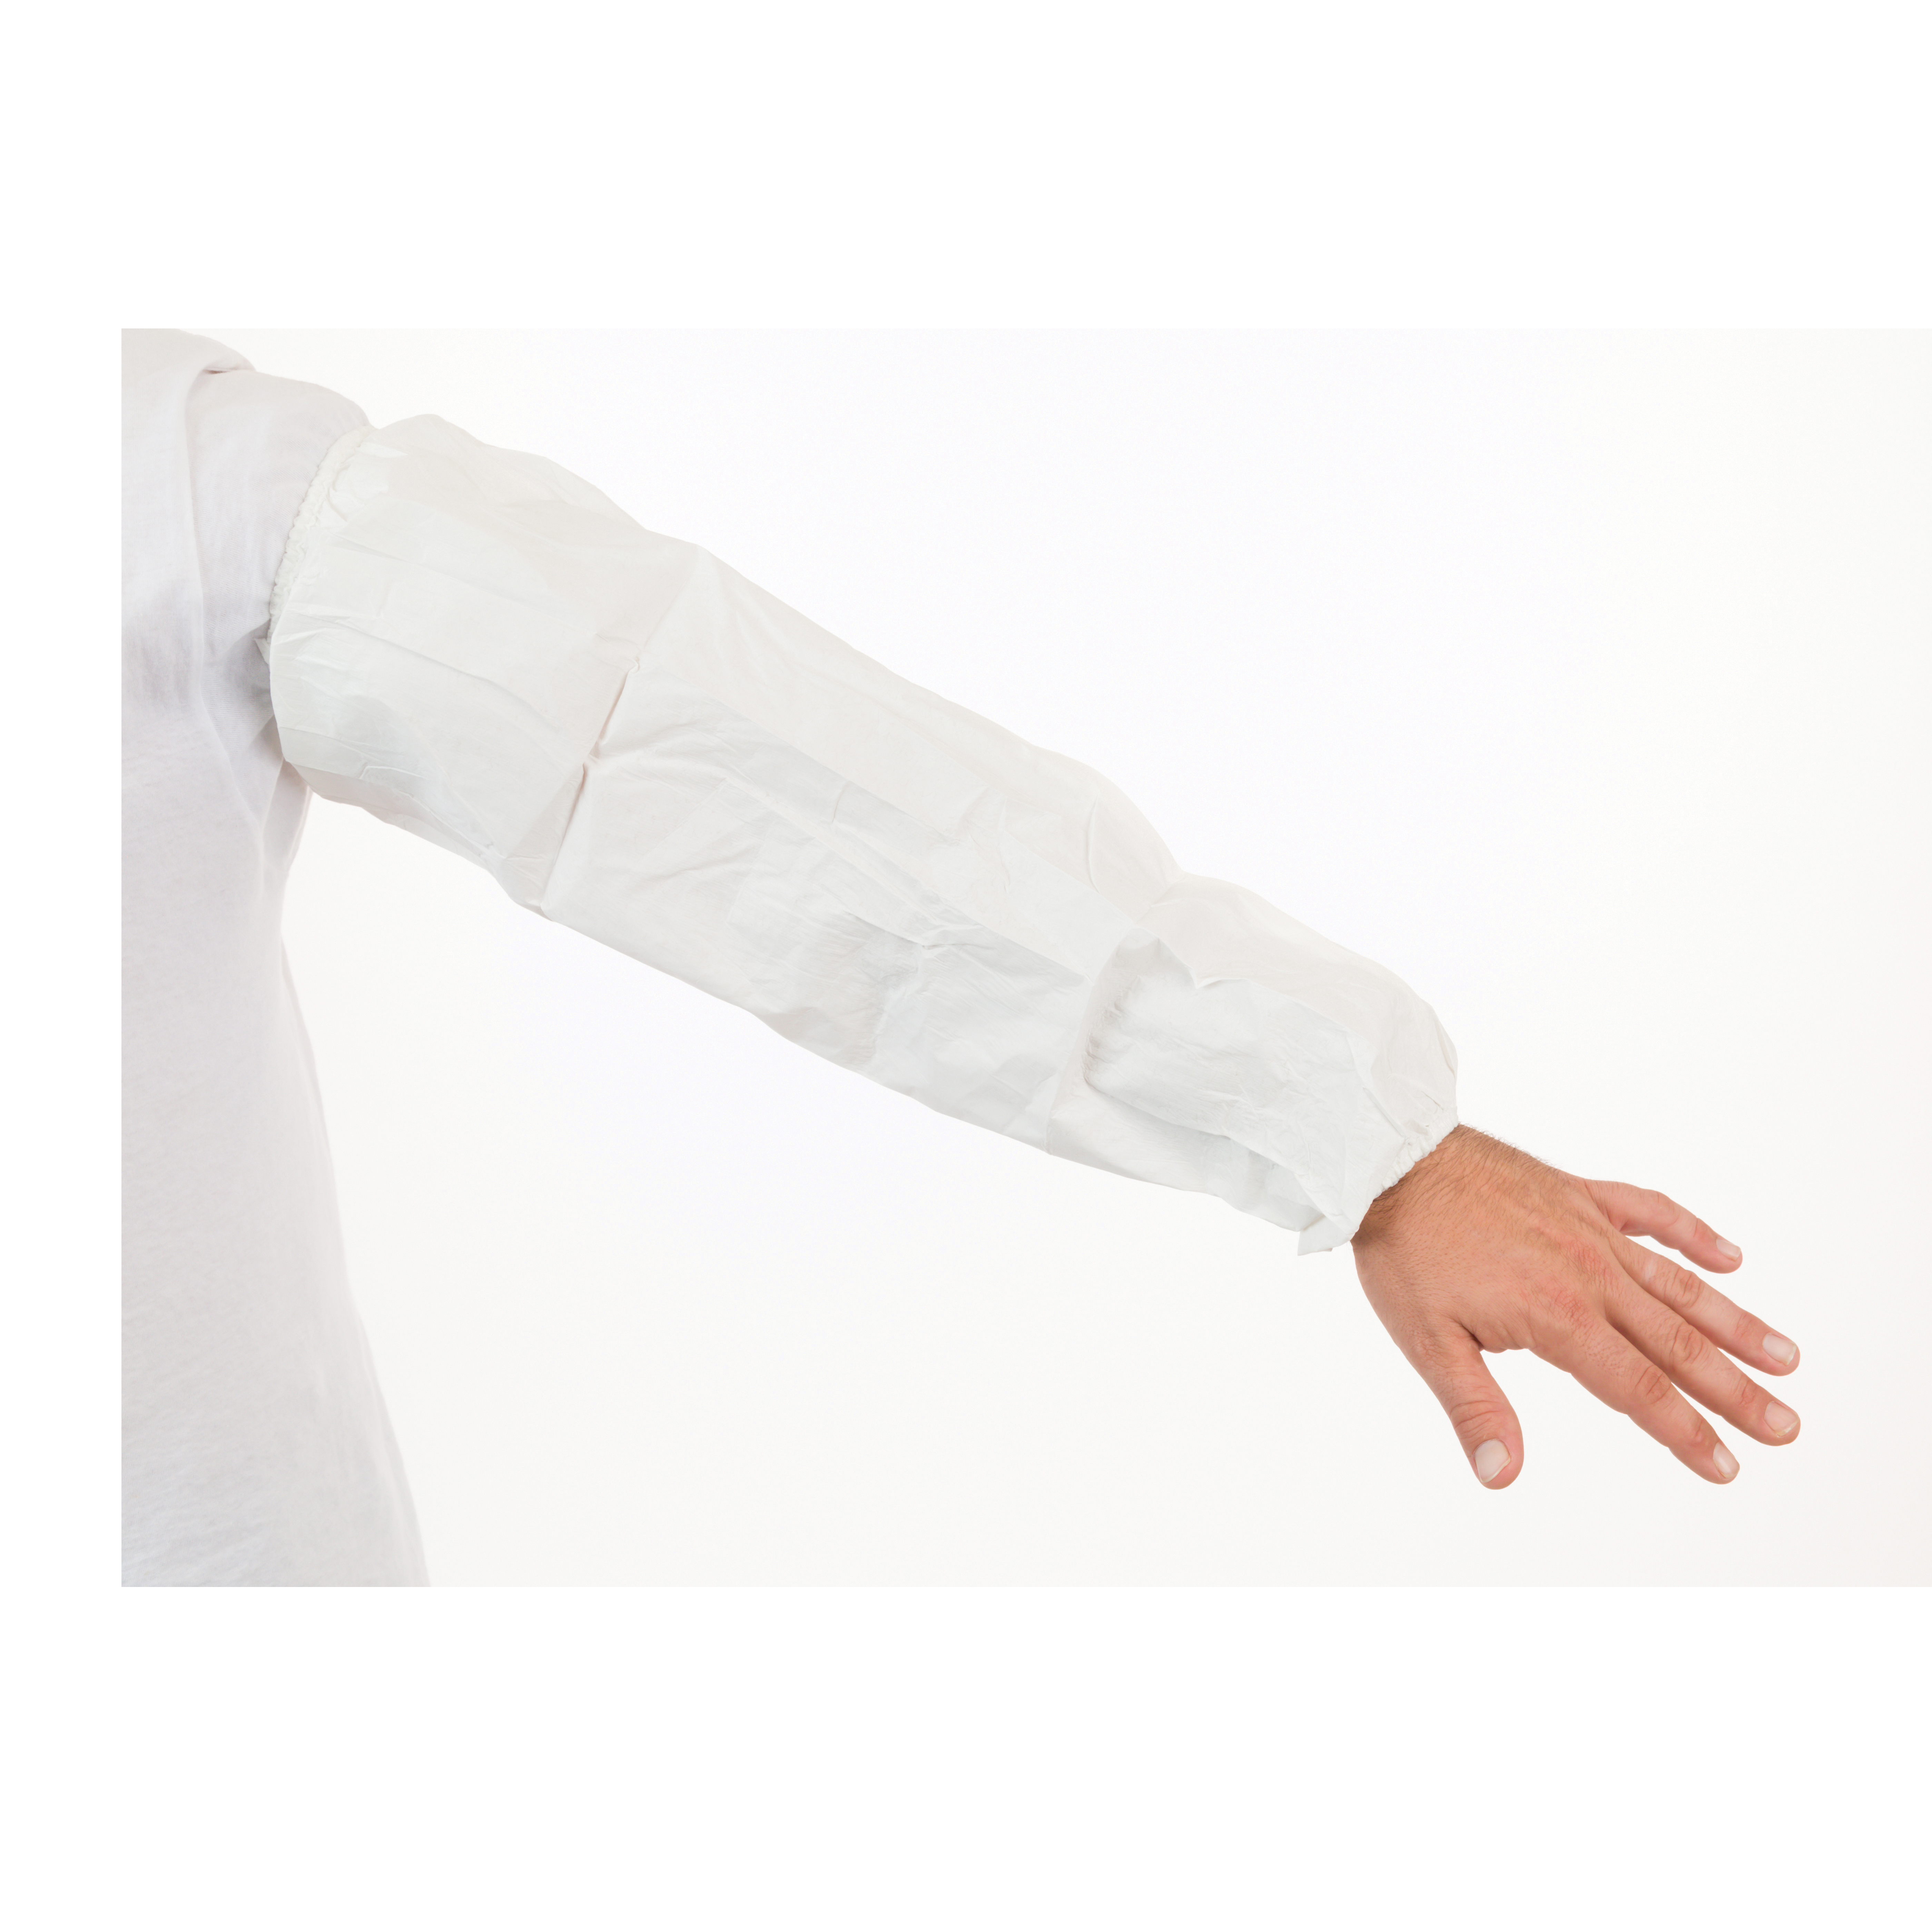 International Enviroguard MicroGuard MP® 8065 Disposable Sleeve, Universal, 18 in L x 15 mil THK, White, Microporous Fabric